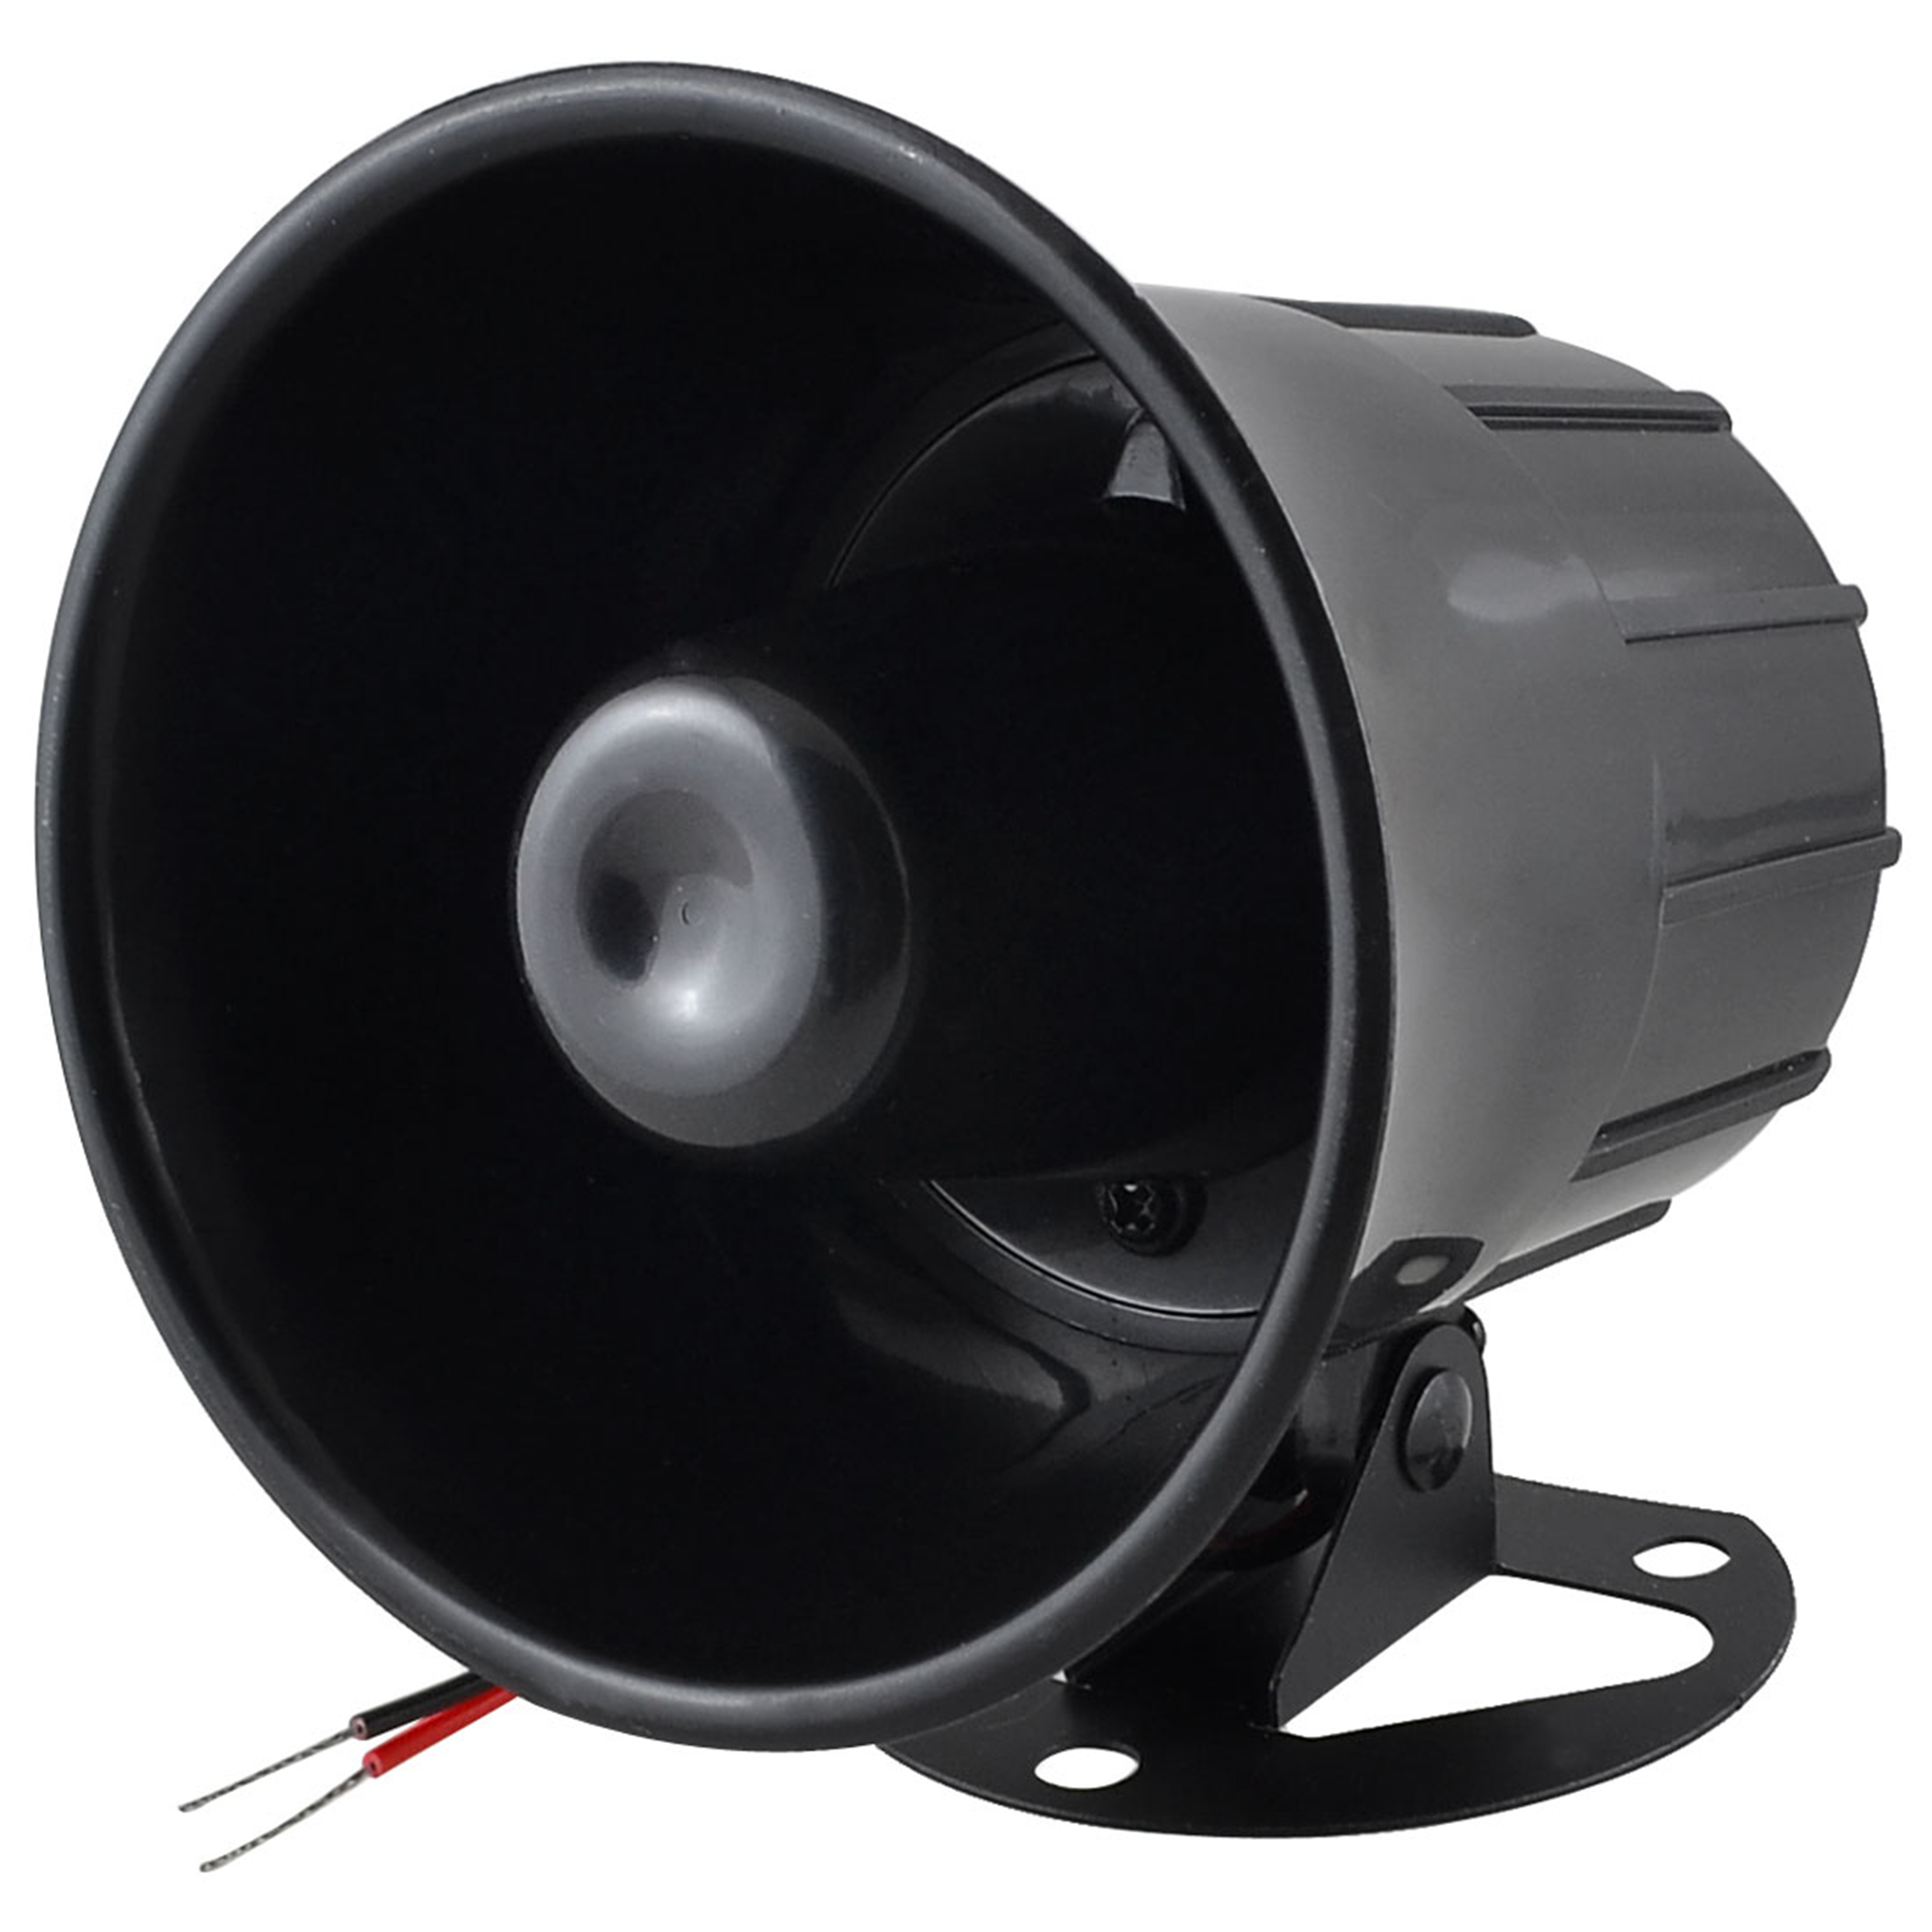 DC 12V 15W Replacement One Tone Car Security Alarm Siren Horn Black